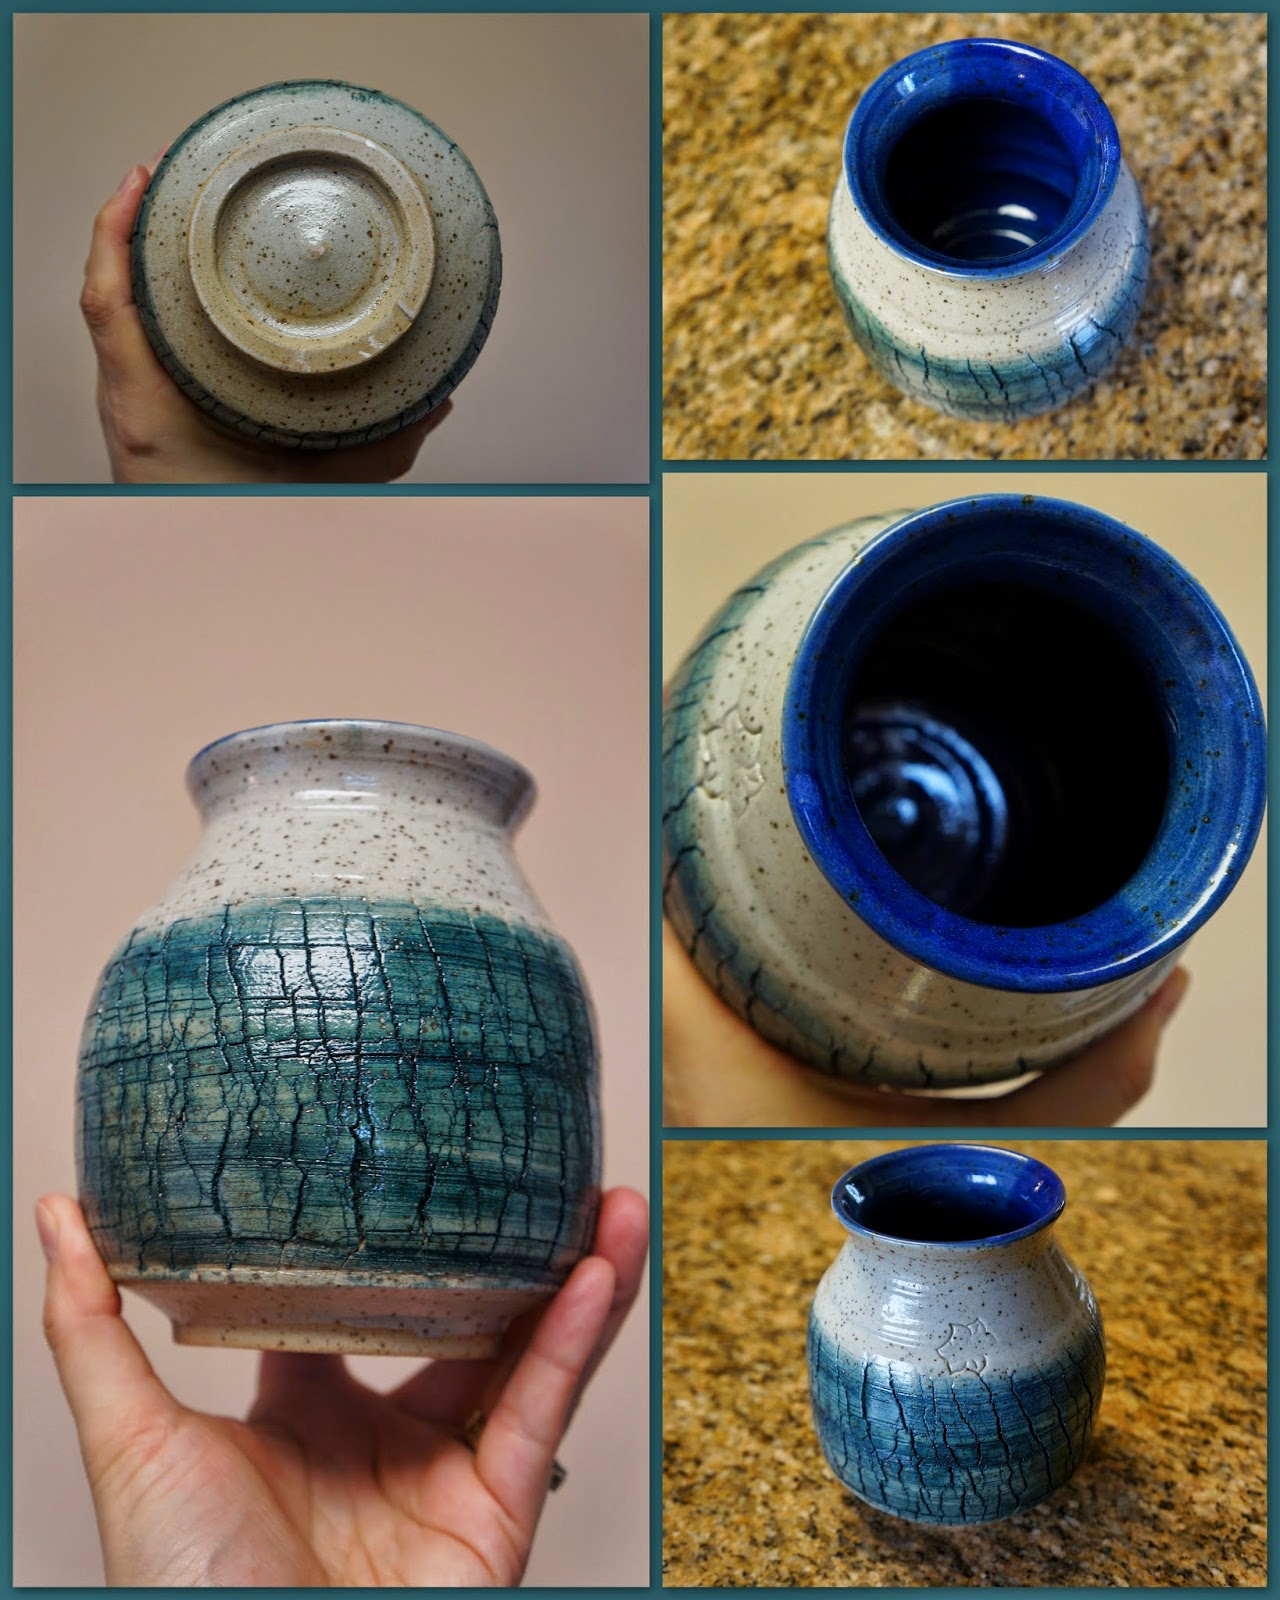 Sodium silicate crackled vase with teal stain to bring out the texture.